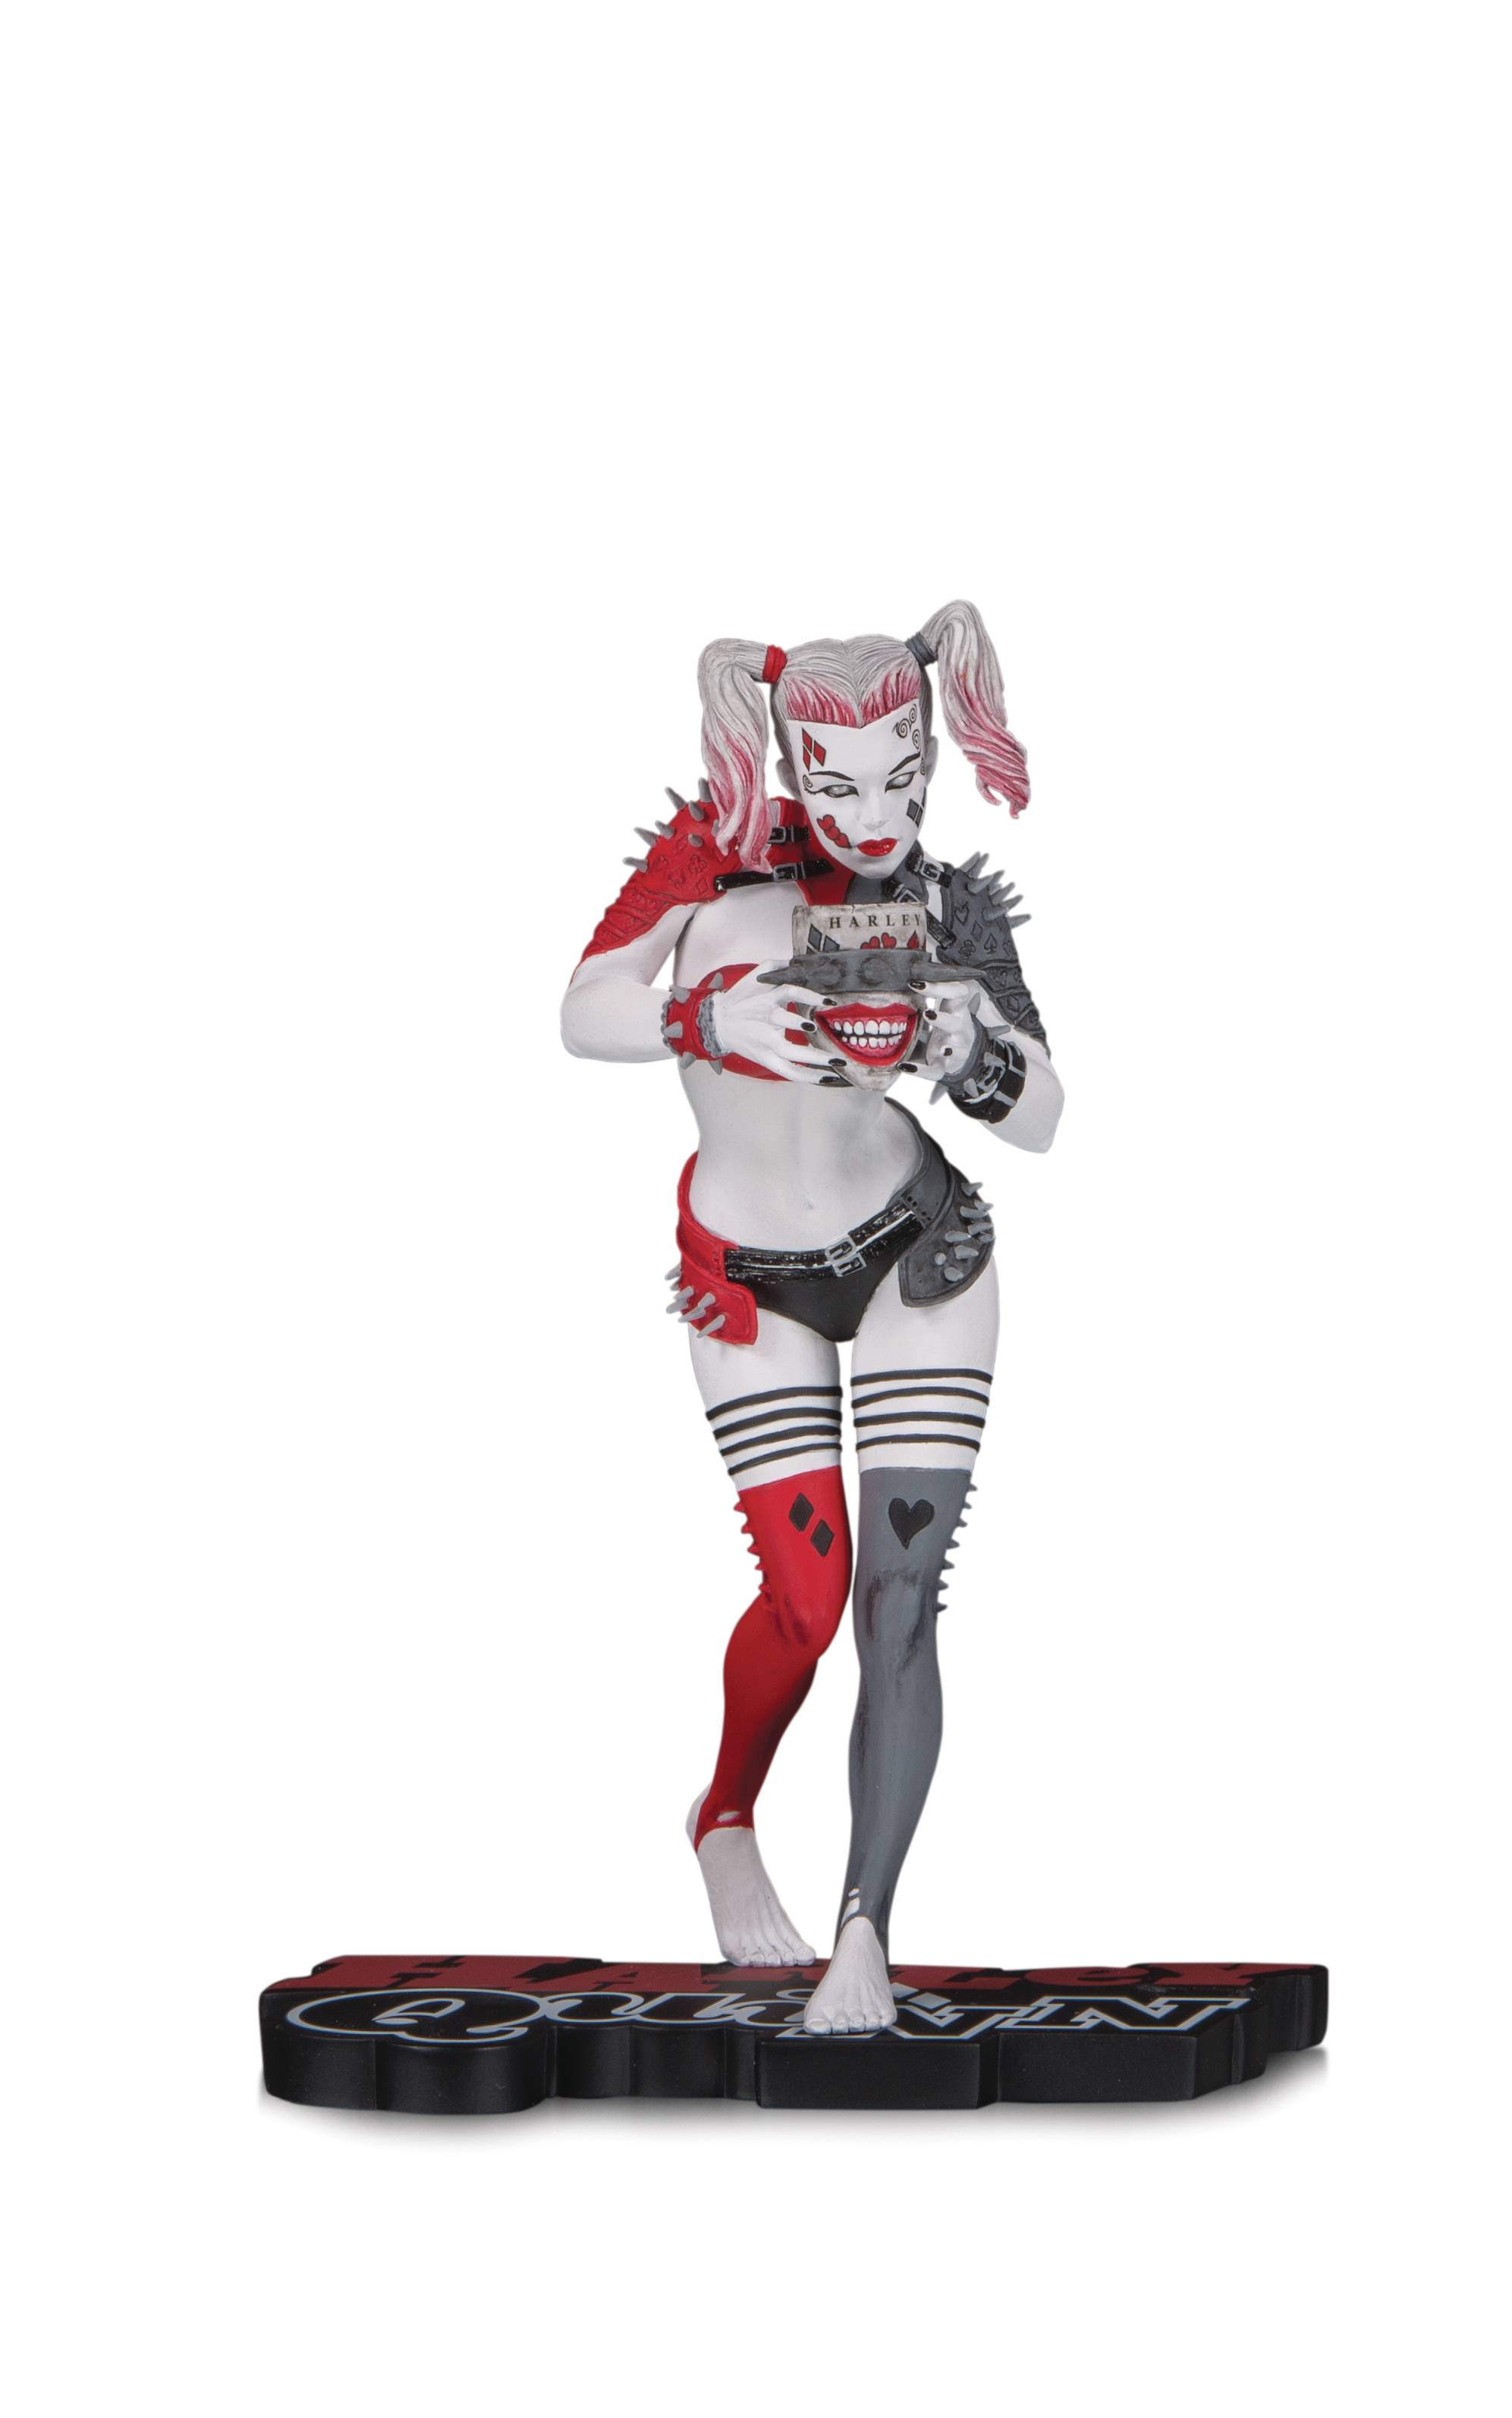 HARLEY QUINN RED WHITE & BLACK STATUE BY GREG HORN.jpg